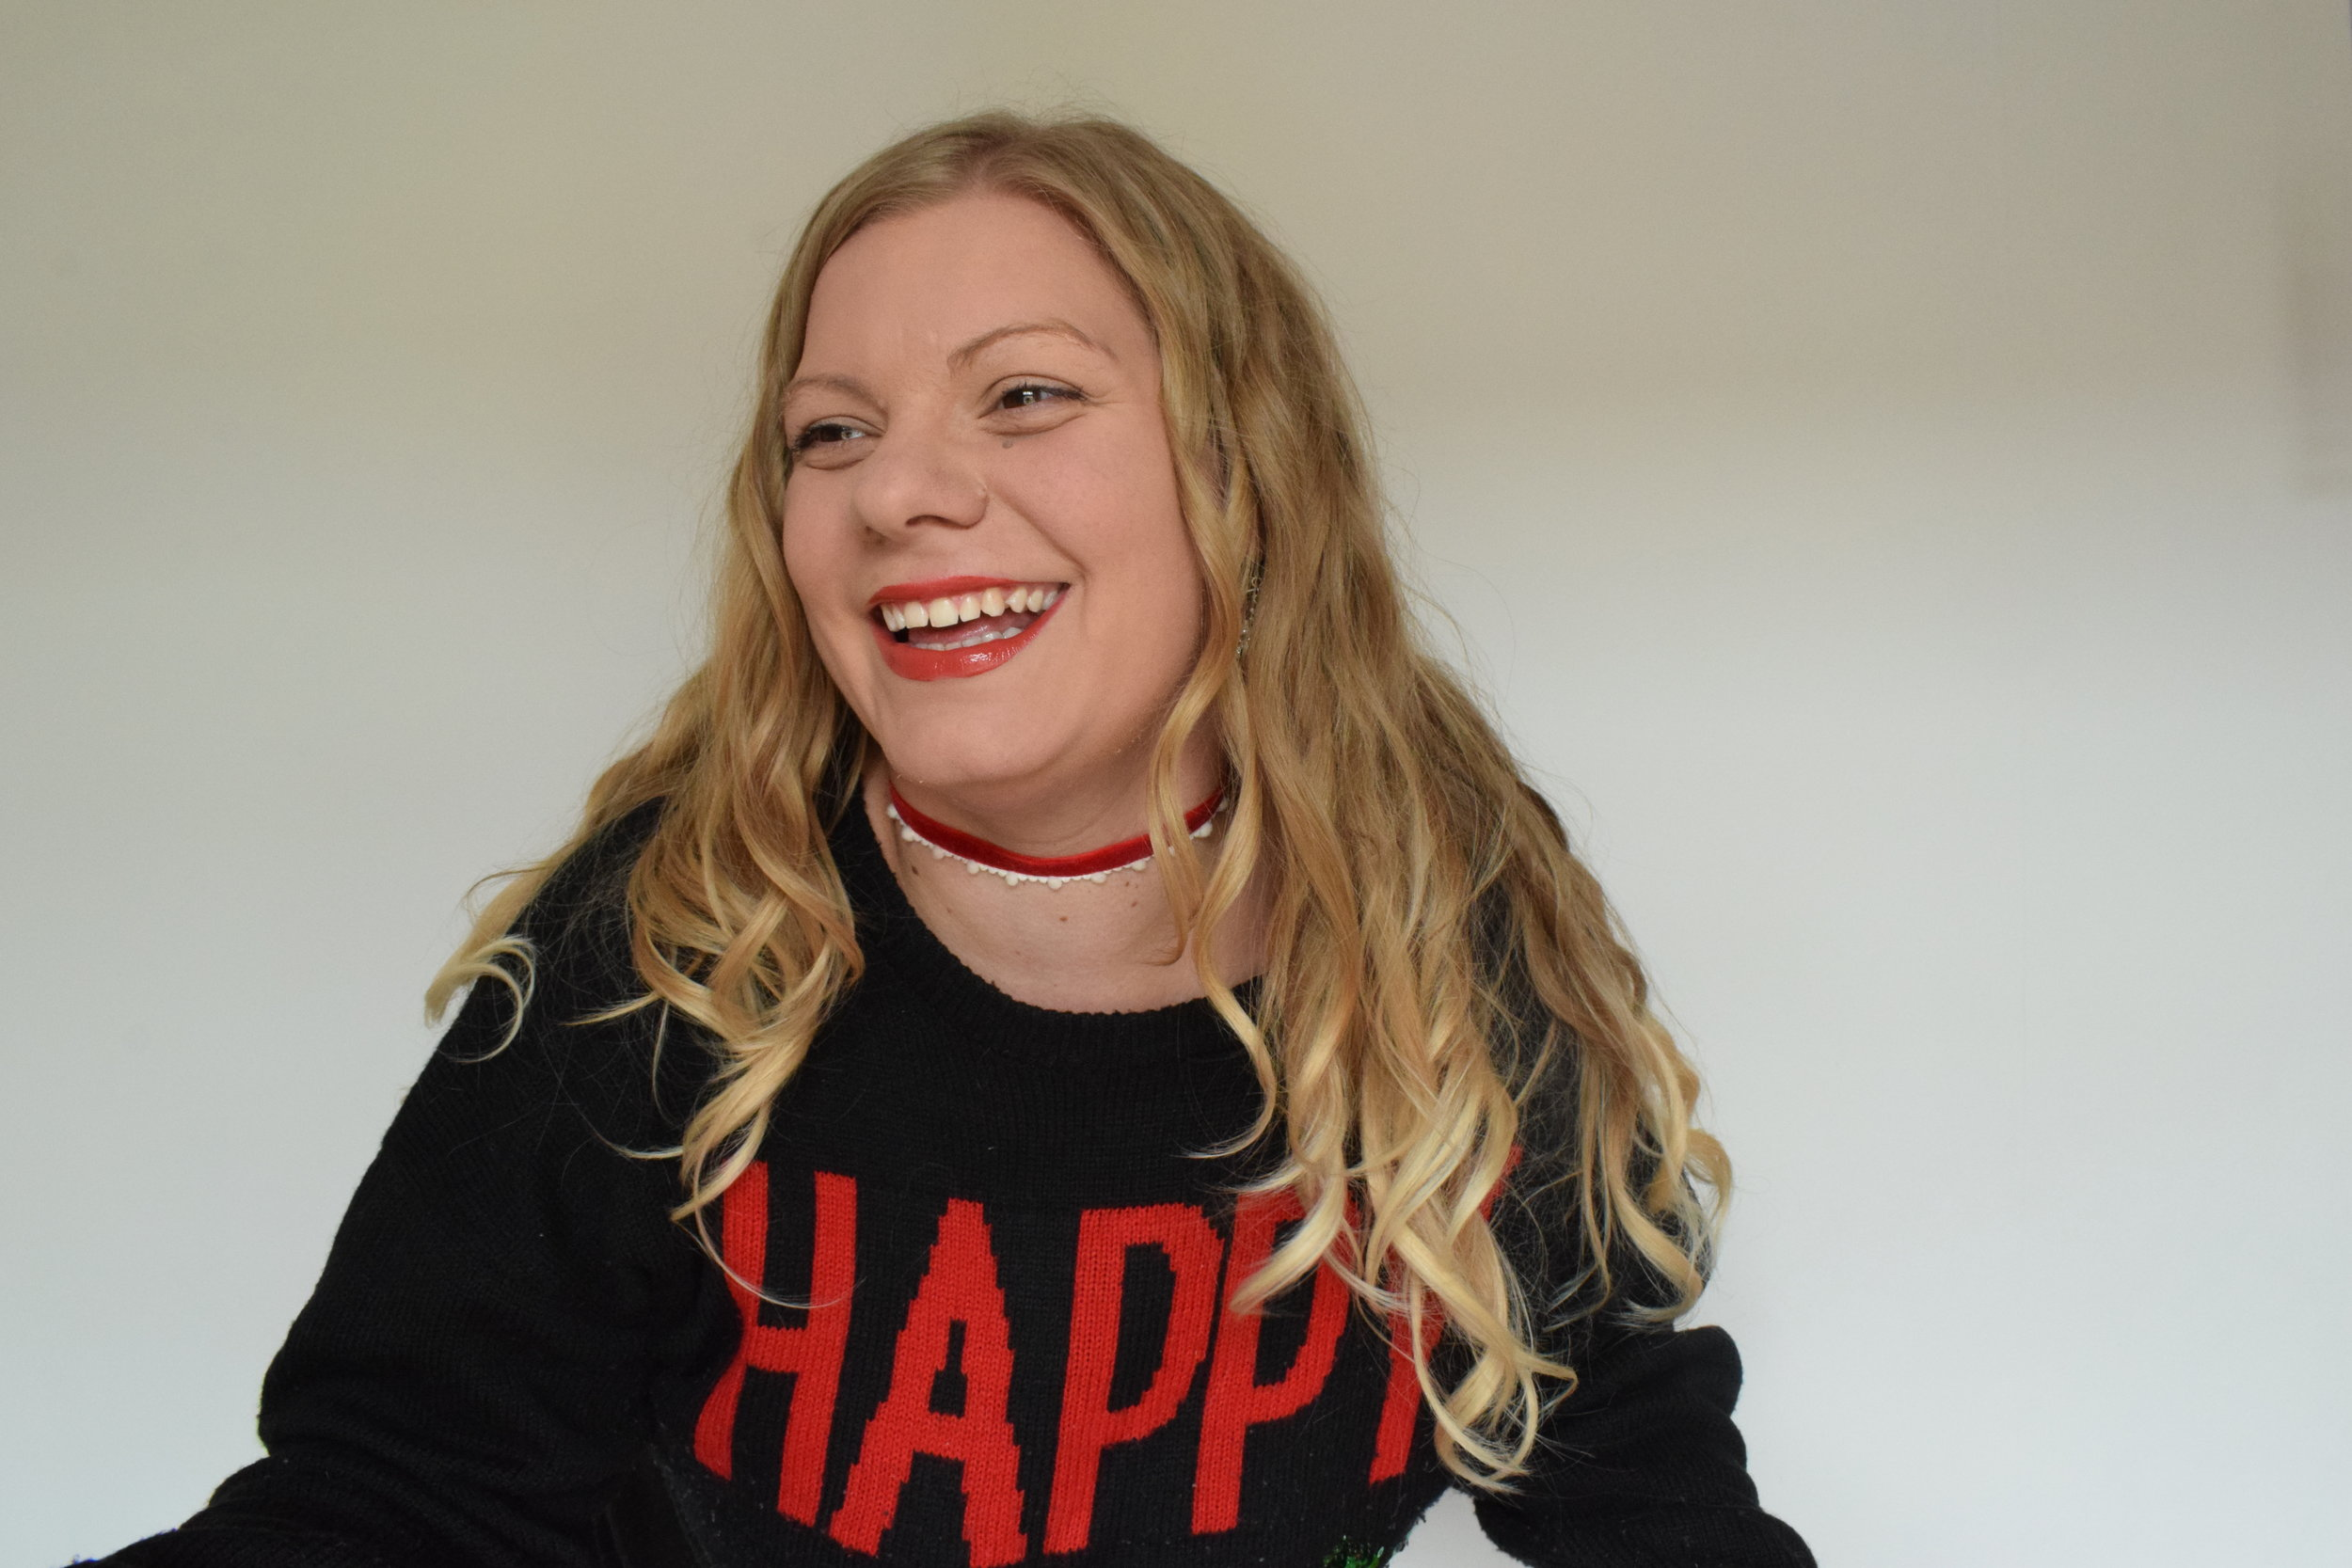 Laughter is the best medicine, and Christmas jumpers help